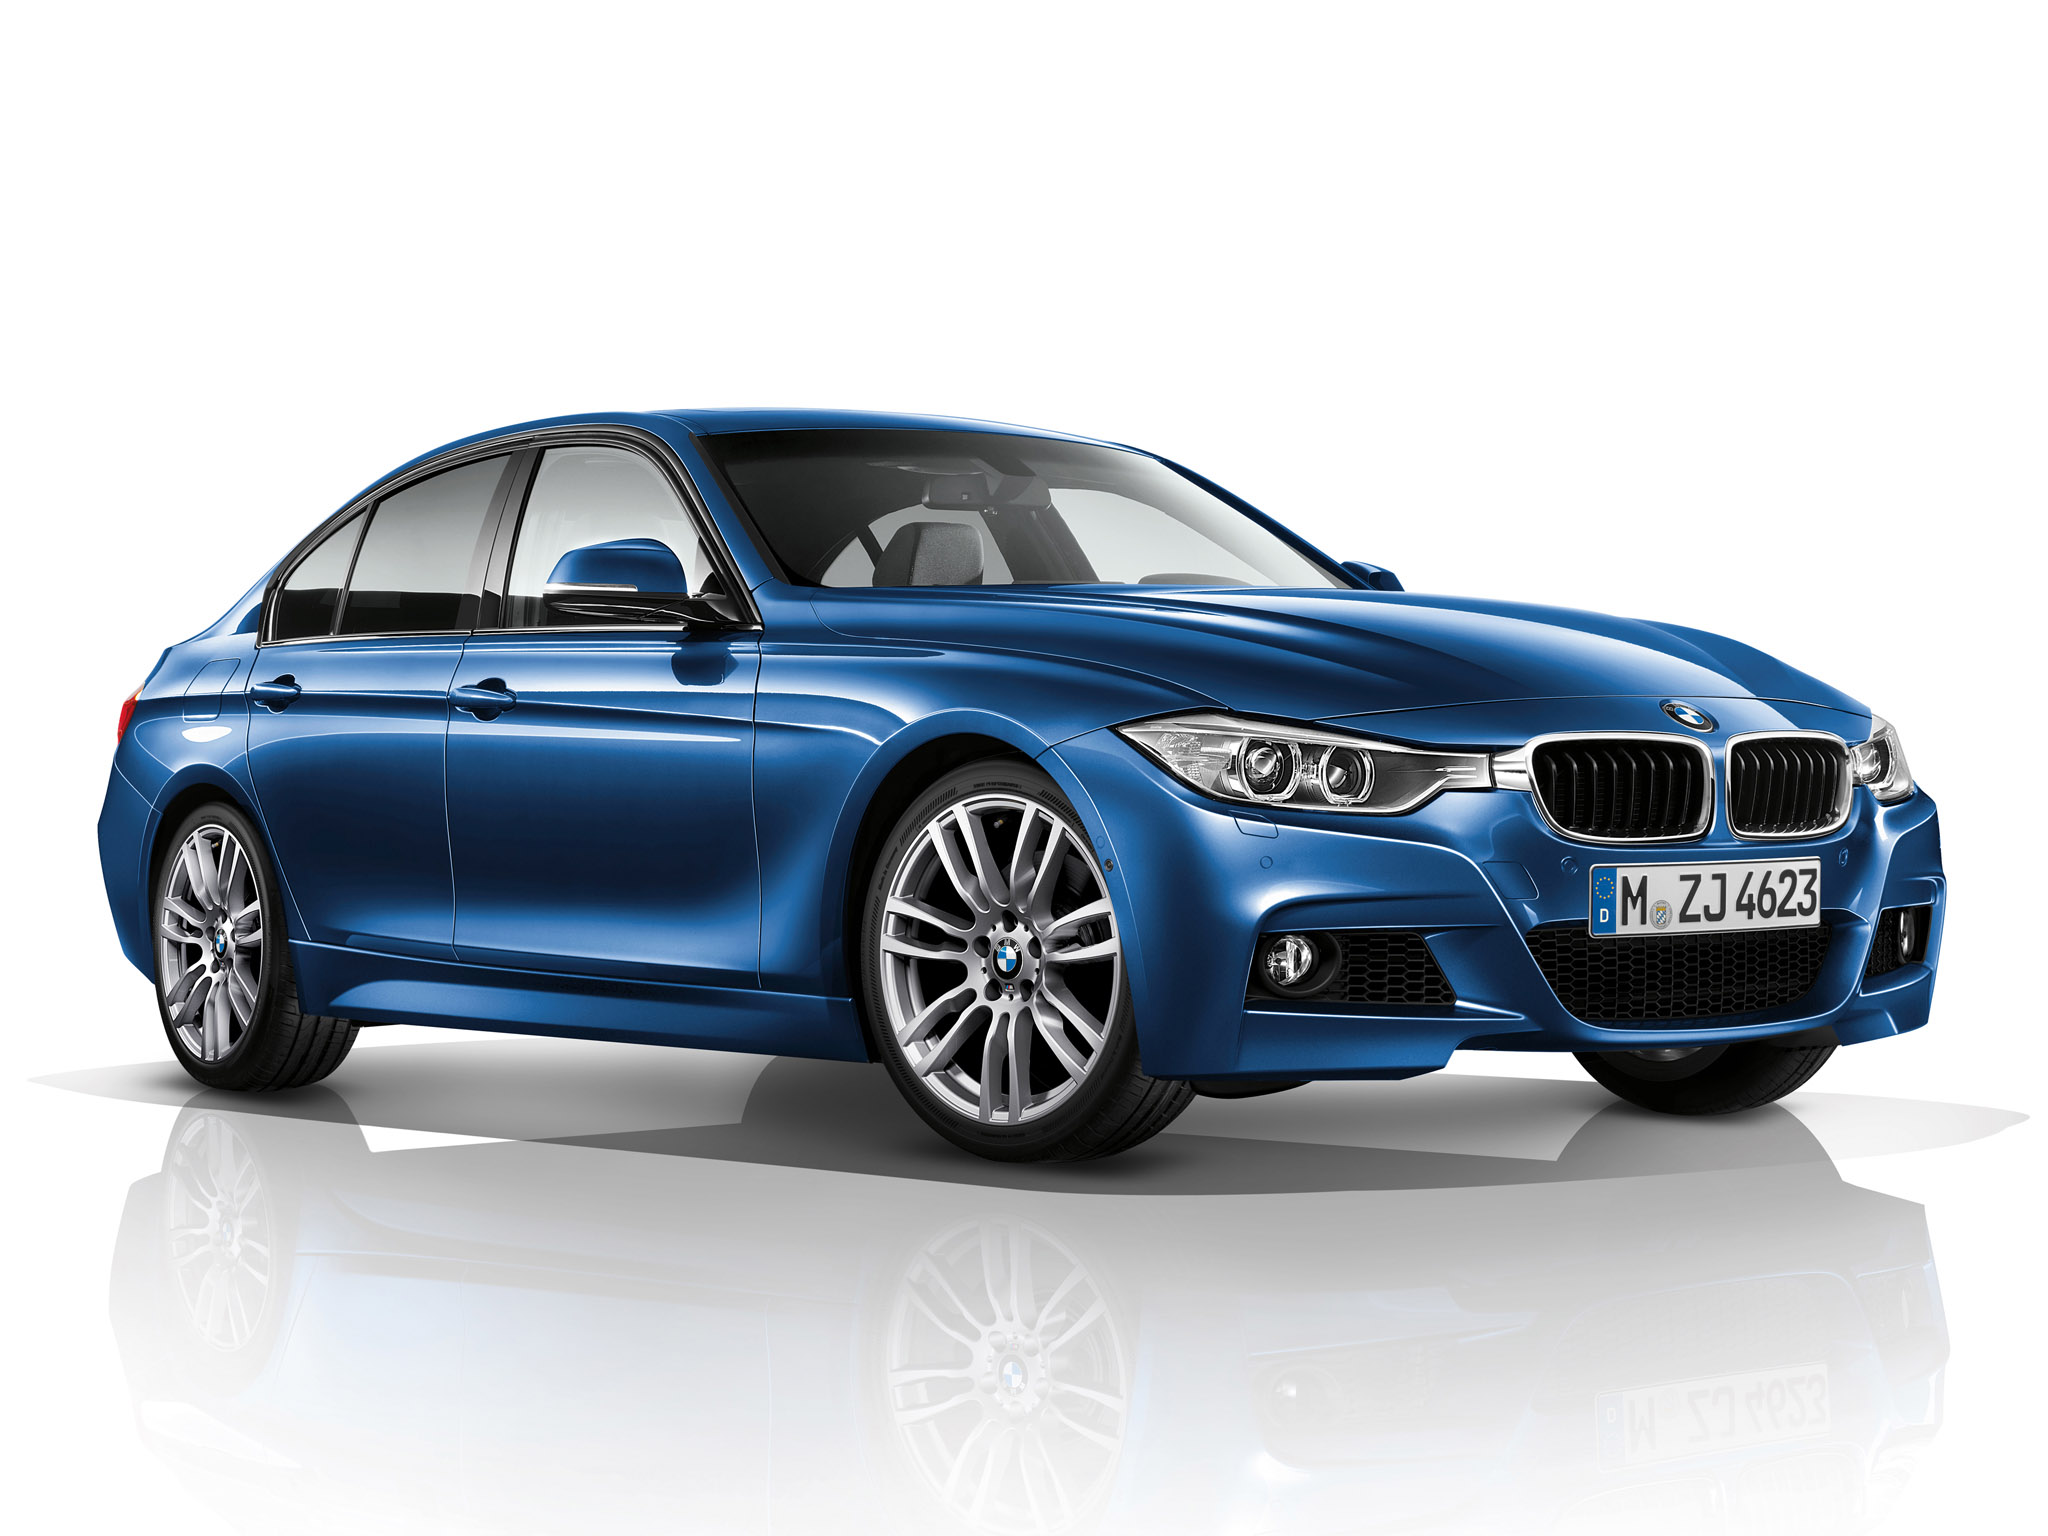 Bmw Images Bmw 3 Series M Sportpaket F30 2012 Hd Wallpaper And